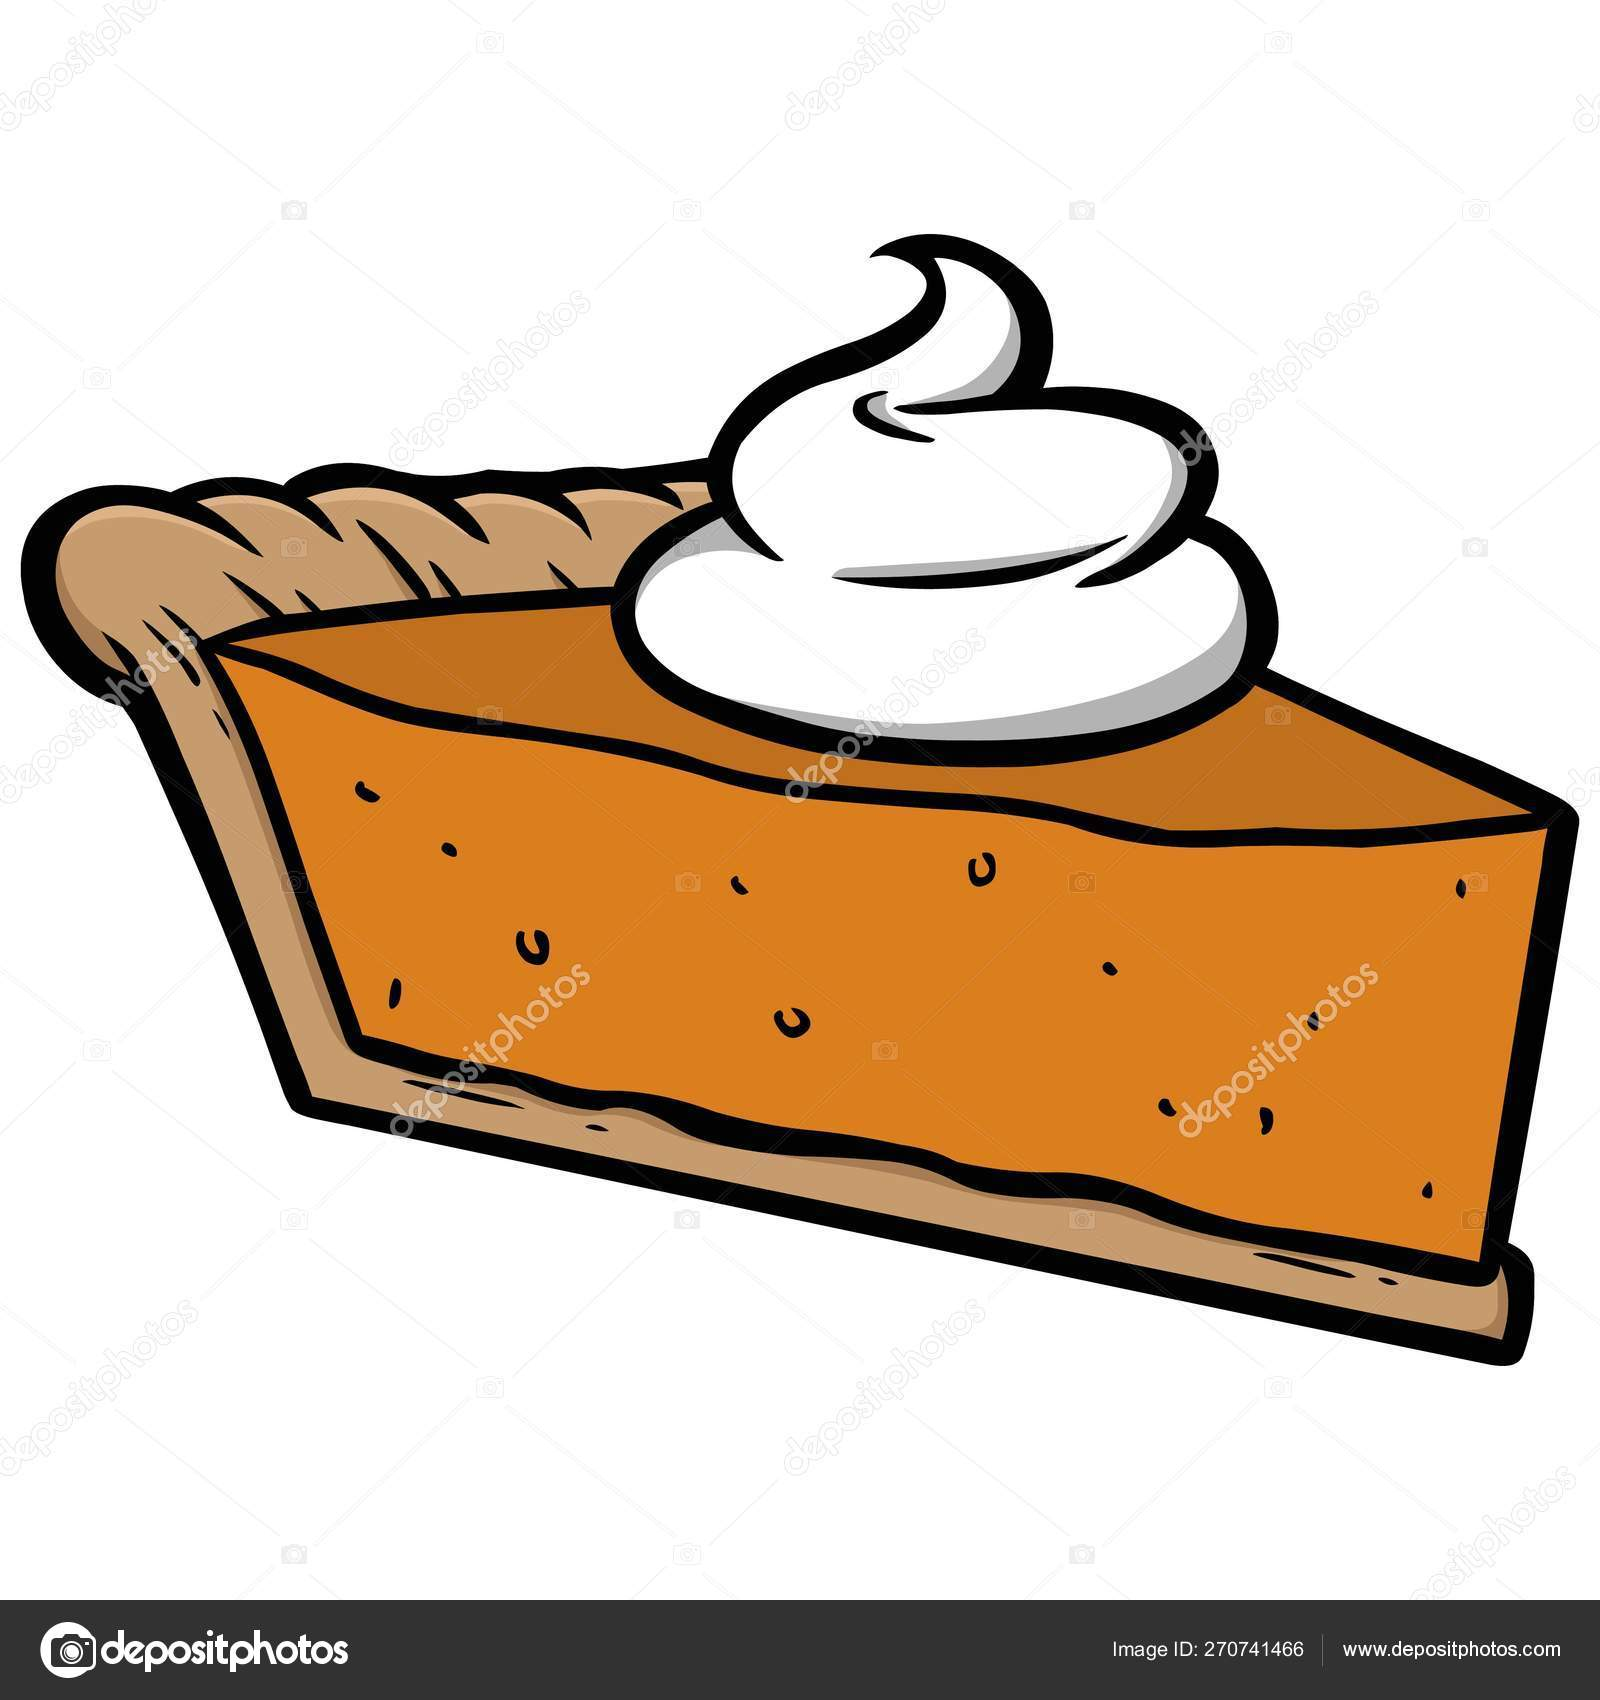 Pumpkin Pie Cartoon Illustration Pumpkin Pie Vector Image By C Larryrains Vector Stock 270741466